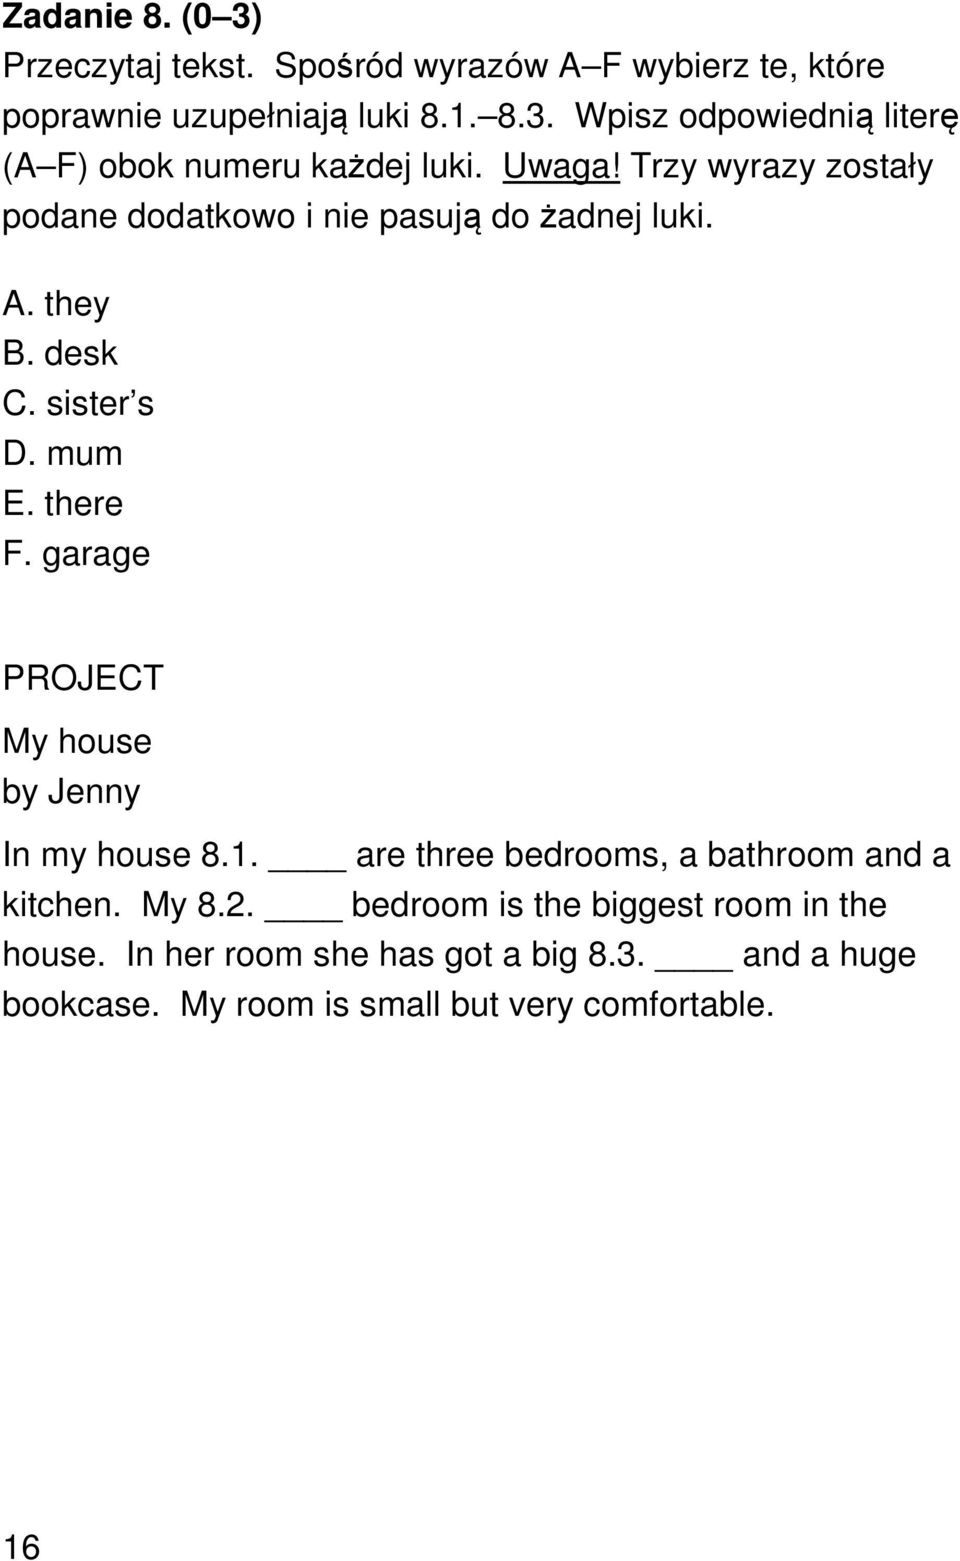 garage PROJECT My house by Jenny In my house 8.1. are three bedrooms, a bathroom and a kitchen. My 8.2.